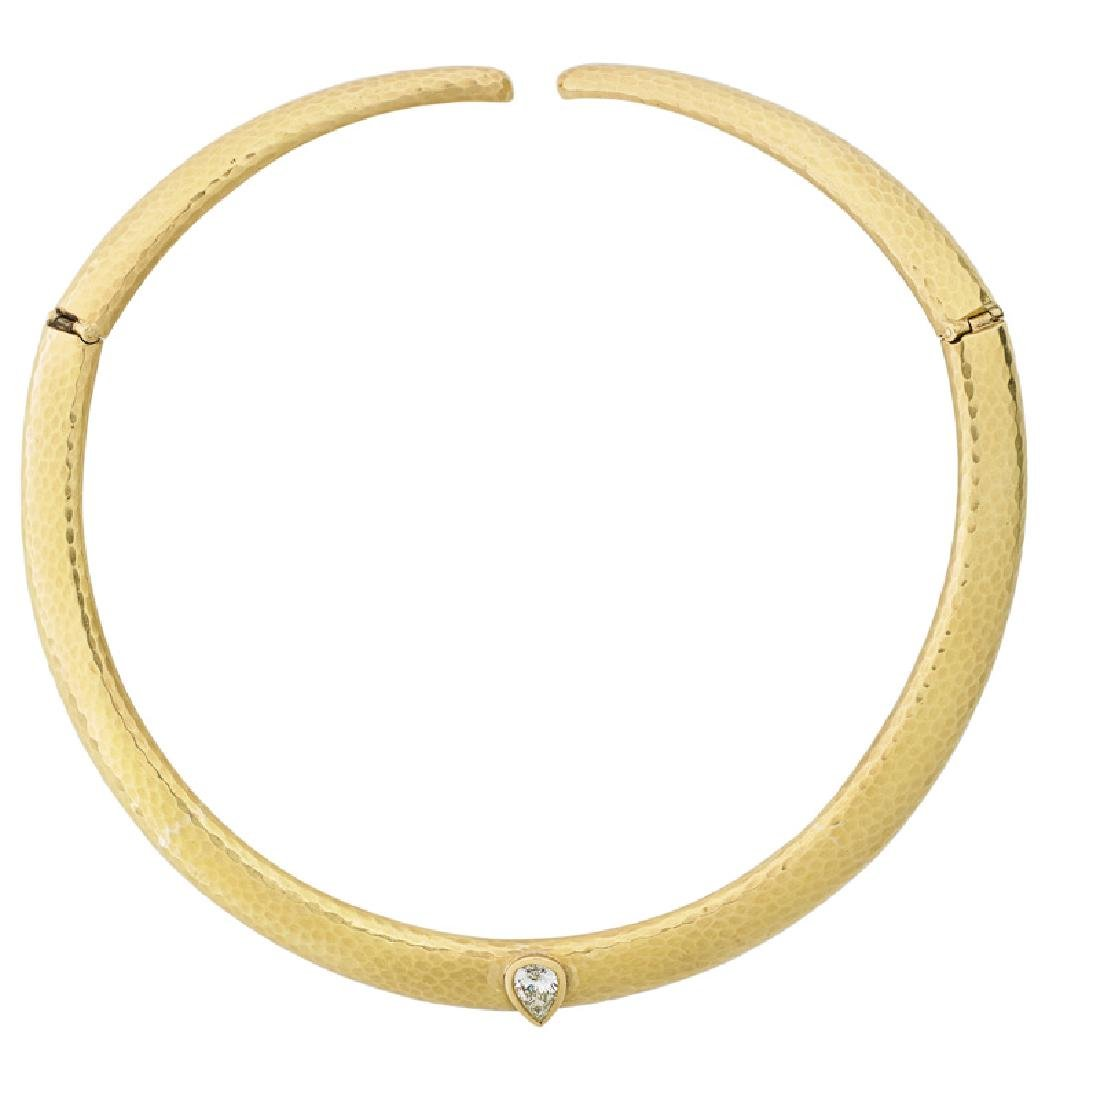 ANDREW CLUNN DIAMOND & YELLOW GOLD COLLAR NECKLACE